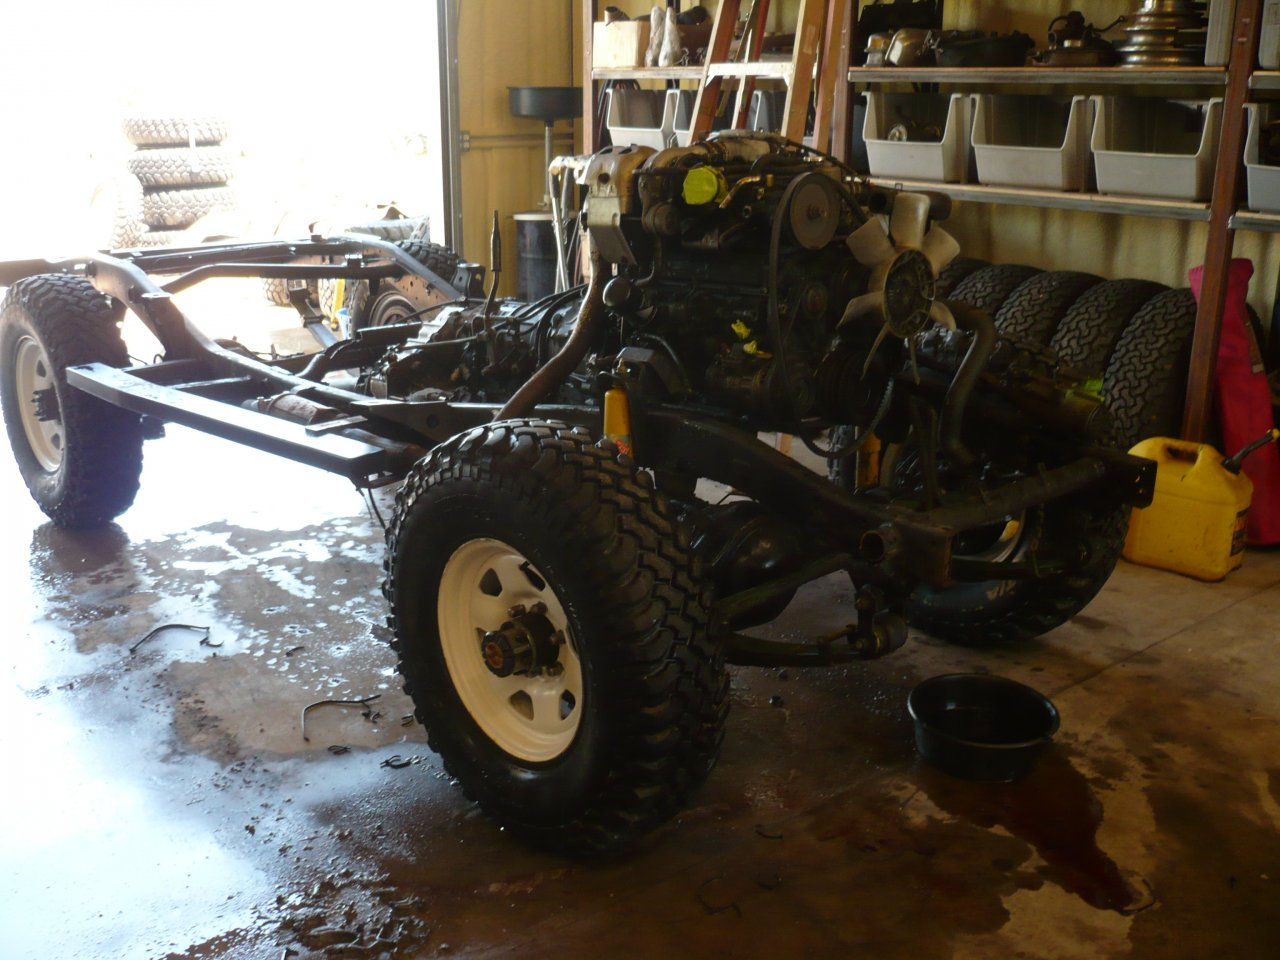 How Much Is A Lift Kit >> For Sale - Old Man Emu lift kit BJ73/74 HZJ73 | IH8MUD Forum